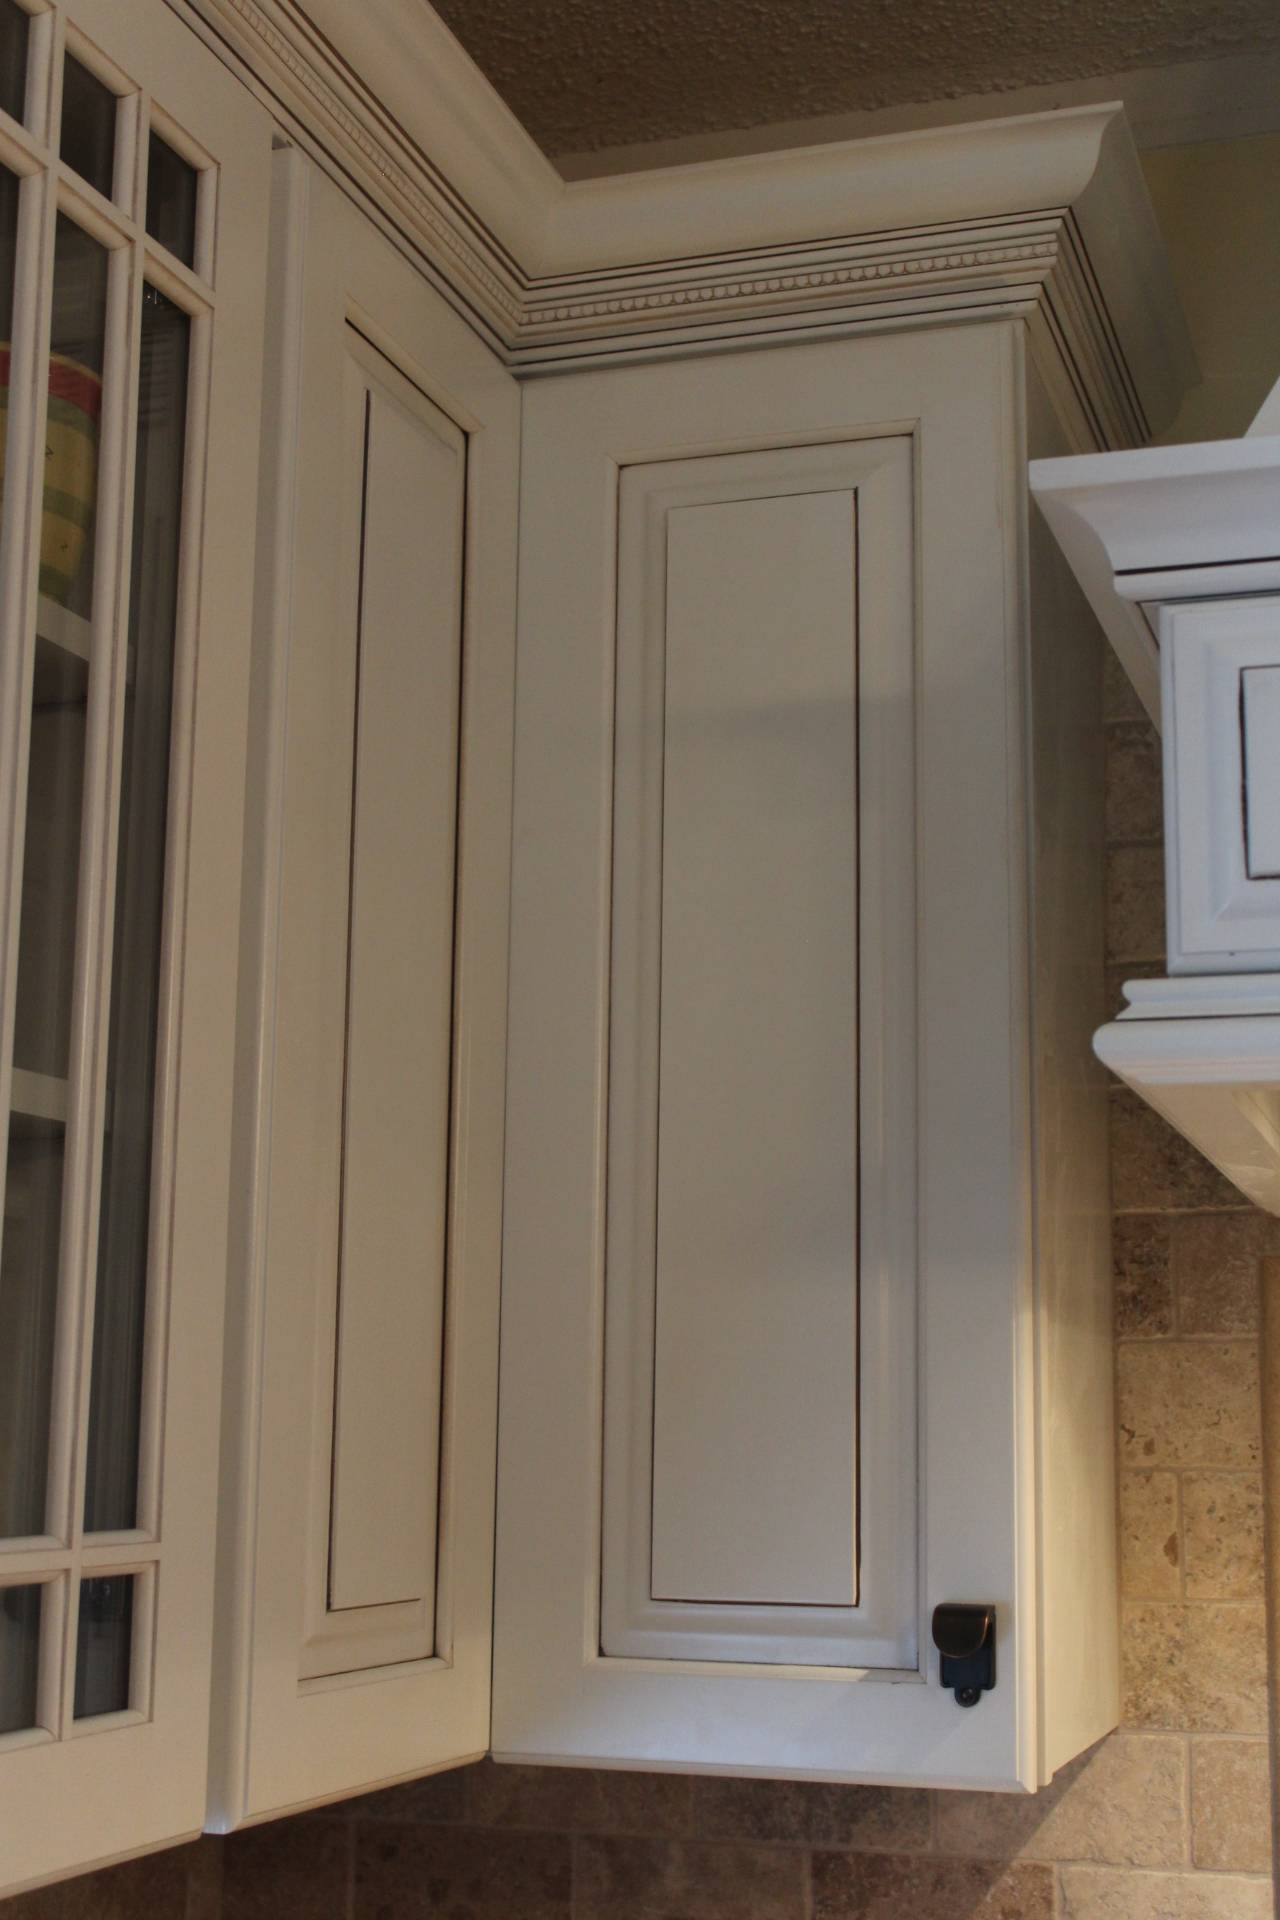 The Easy Reach Wall Cabinet